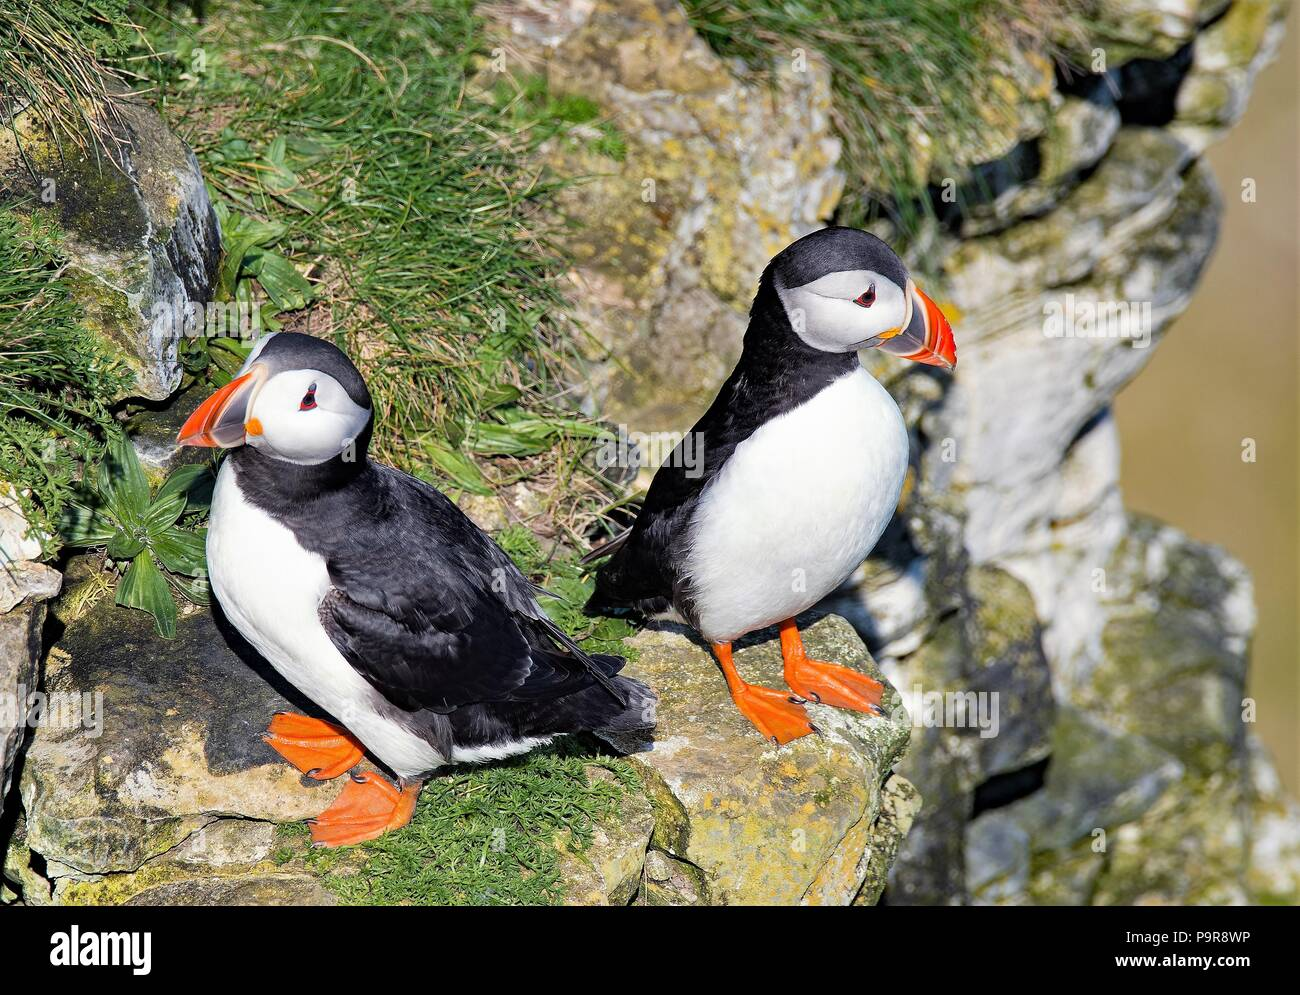 Taken to capture the clown like relationship between a pair of Puffins in Spring. - Stock Image